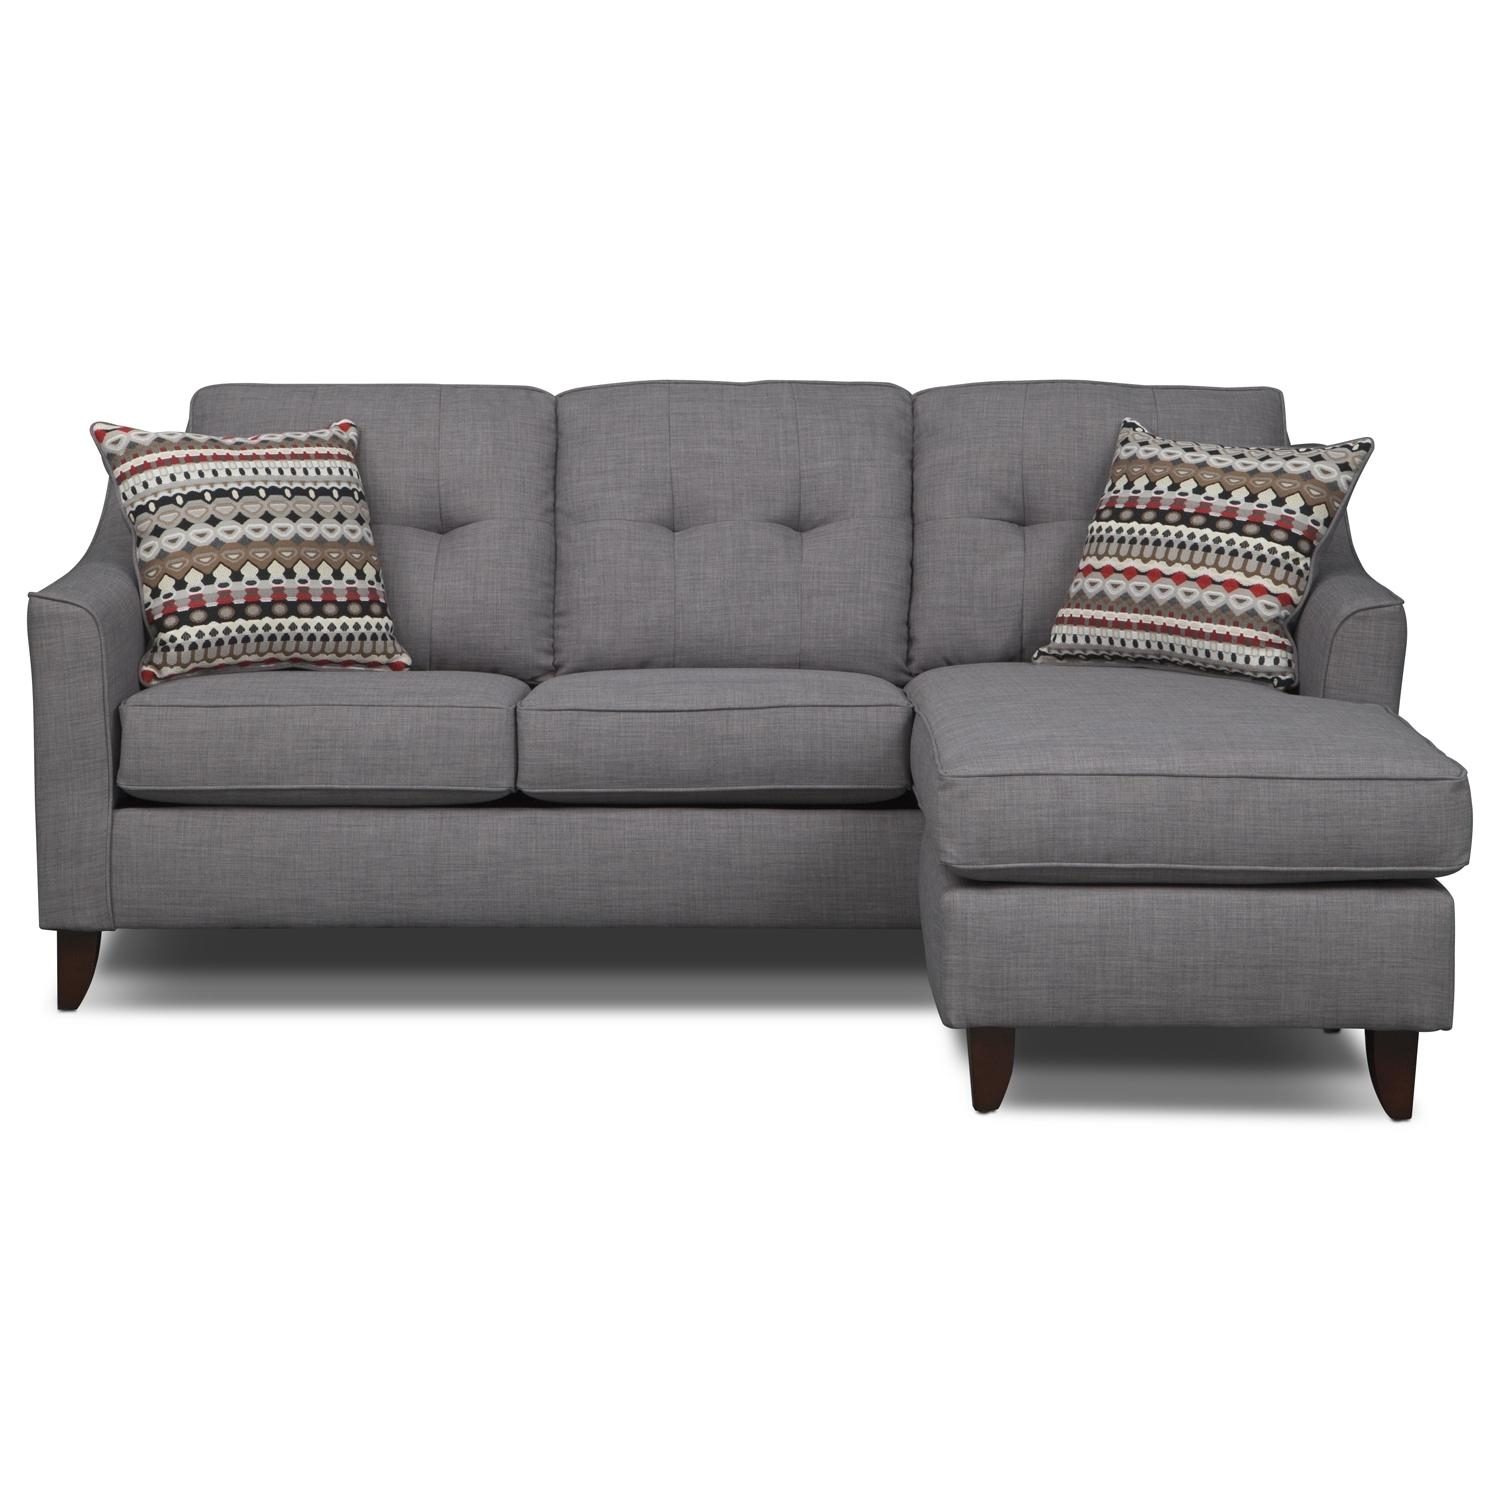 Living Rooms: Cheap Sectional | Value City Furniture Living Room With Value City Sofas (Image 8 of 20)